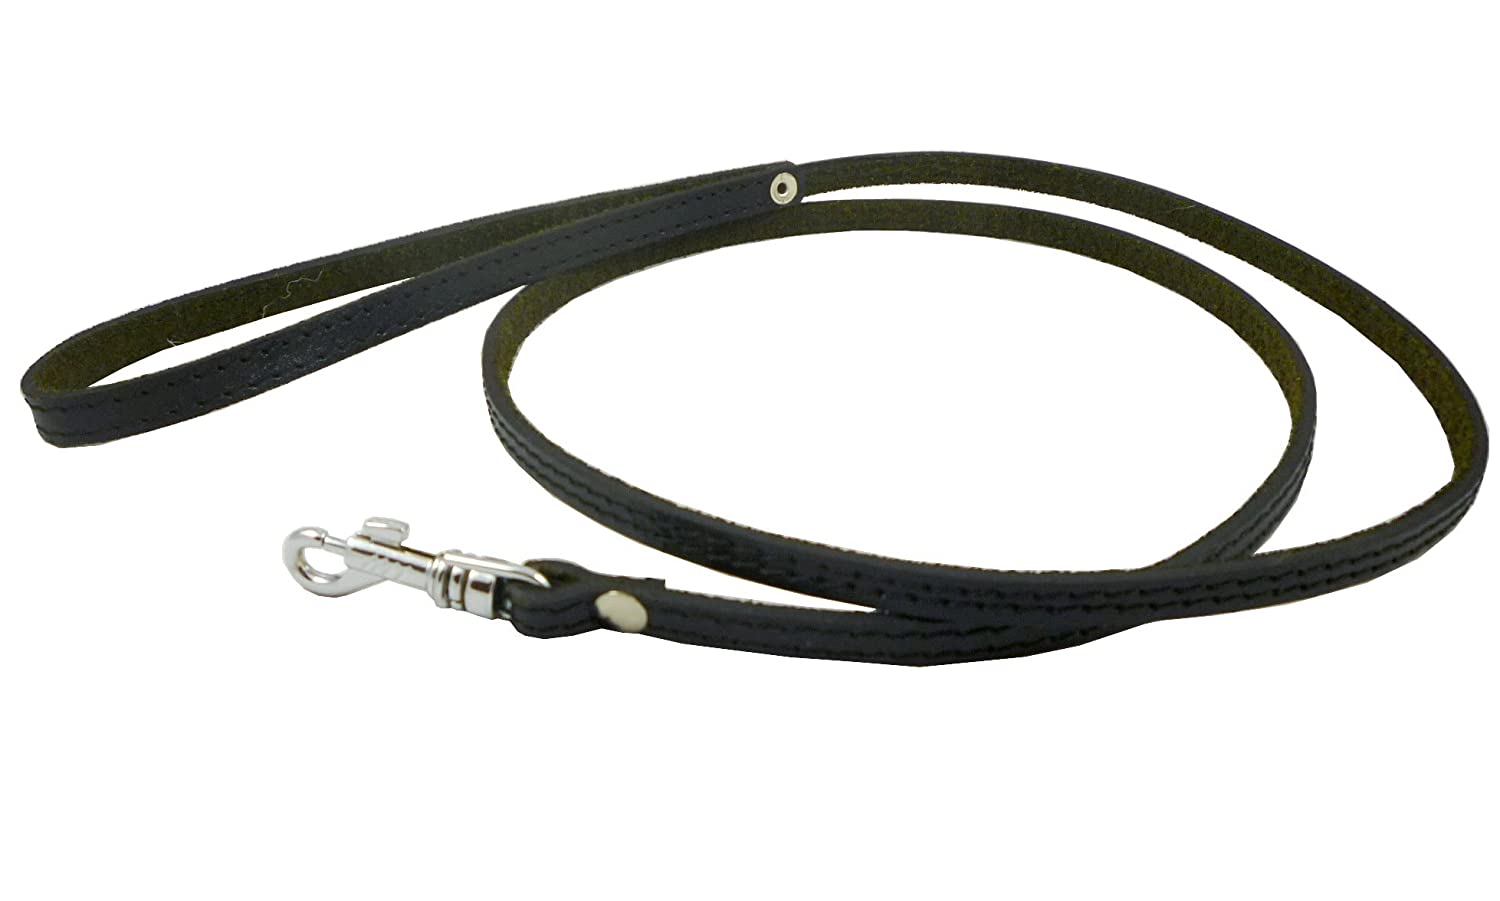 """4' Genuine Leather Classic Dog Leash Black 3/8"""" Wide For Small Breeds and Puppies"""